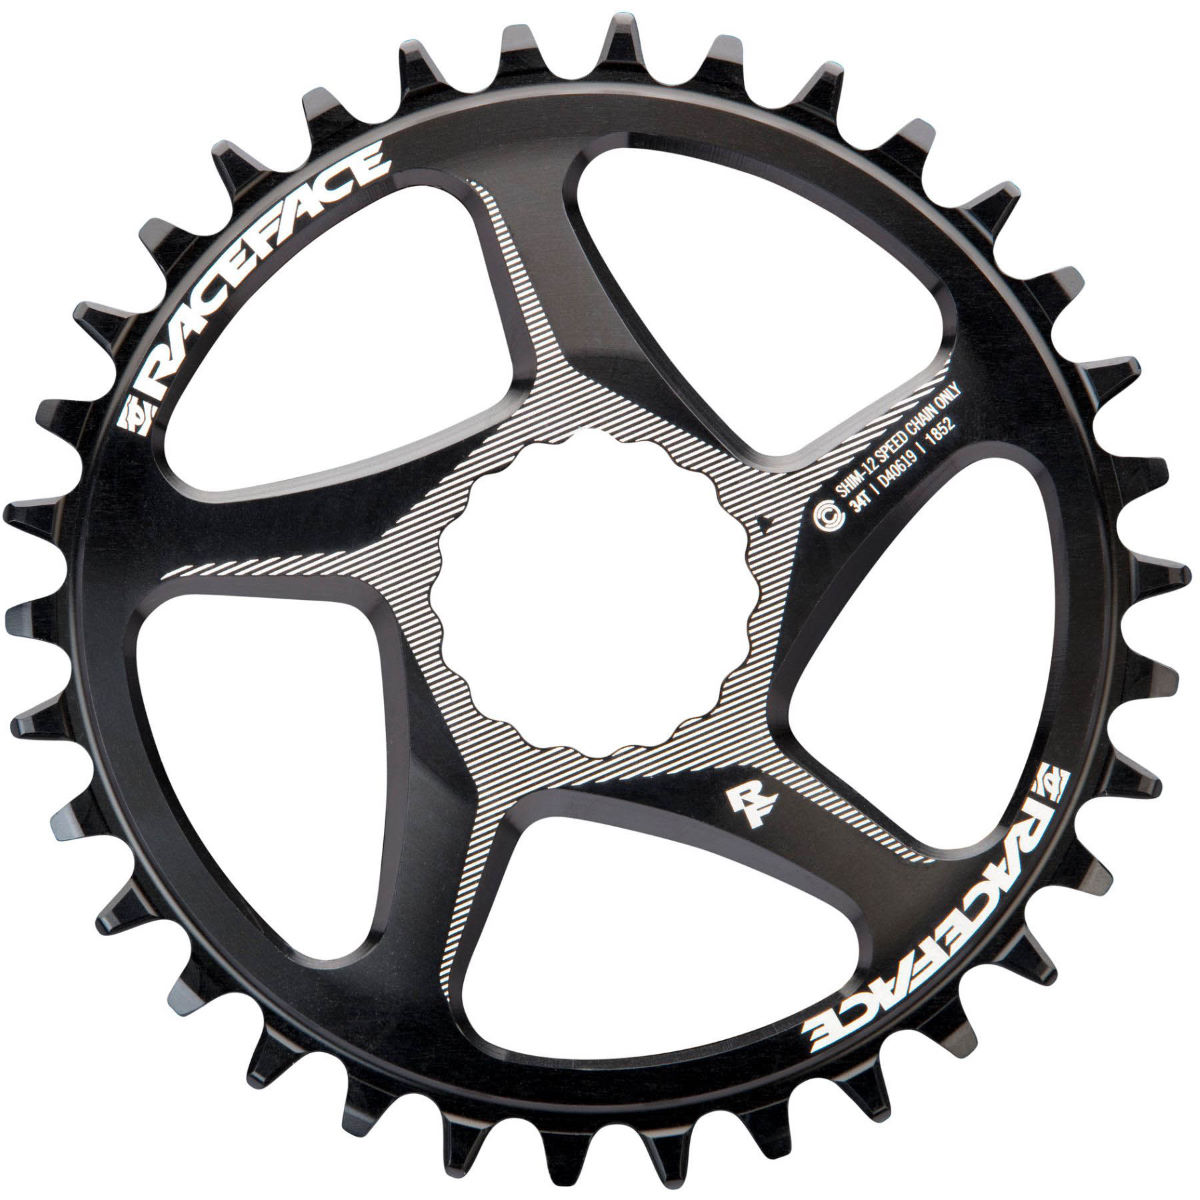 Race Face Direct Mount Shimano Chainring - 34t Black  Chain Rings